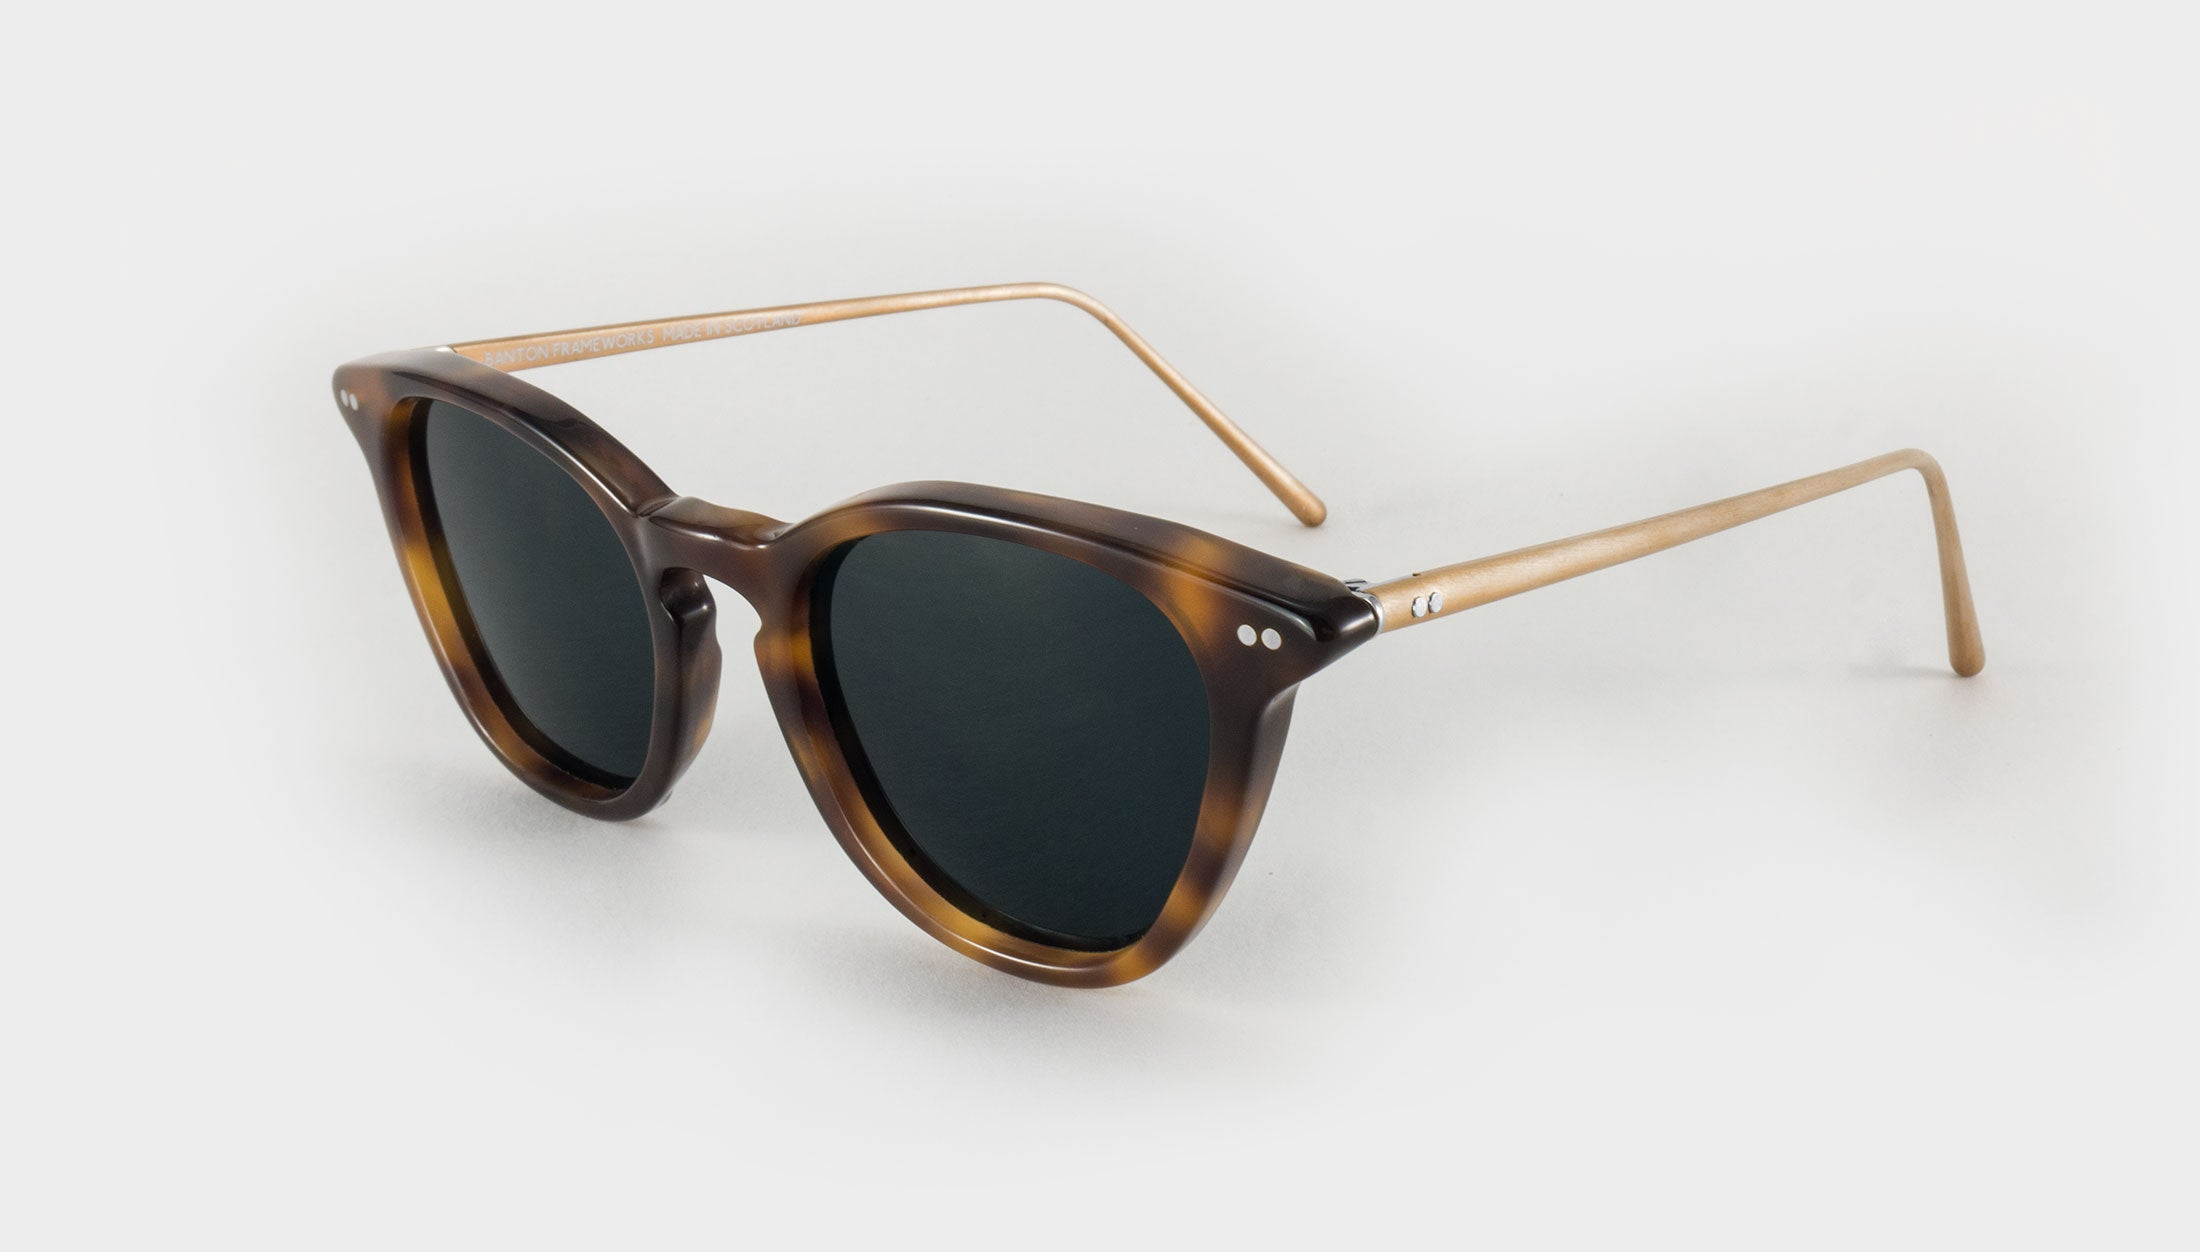 polarised tortoise shell sunglasses side view